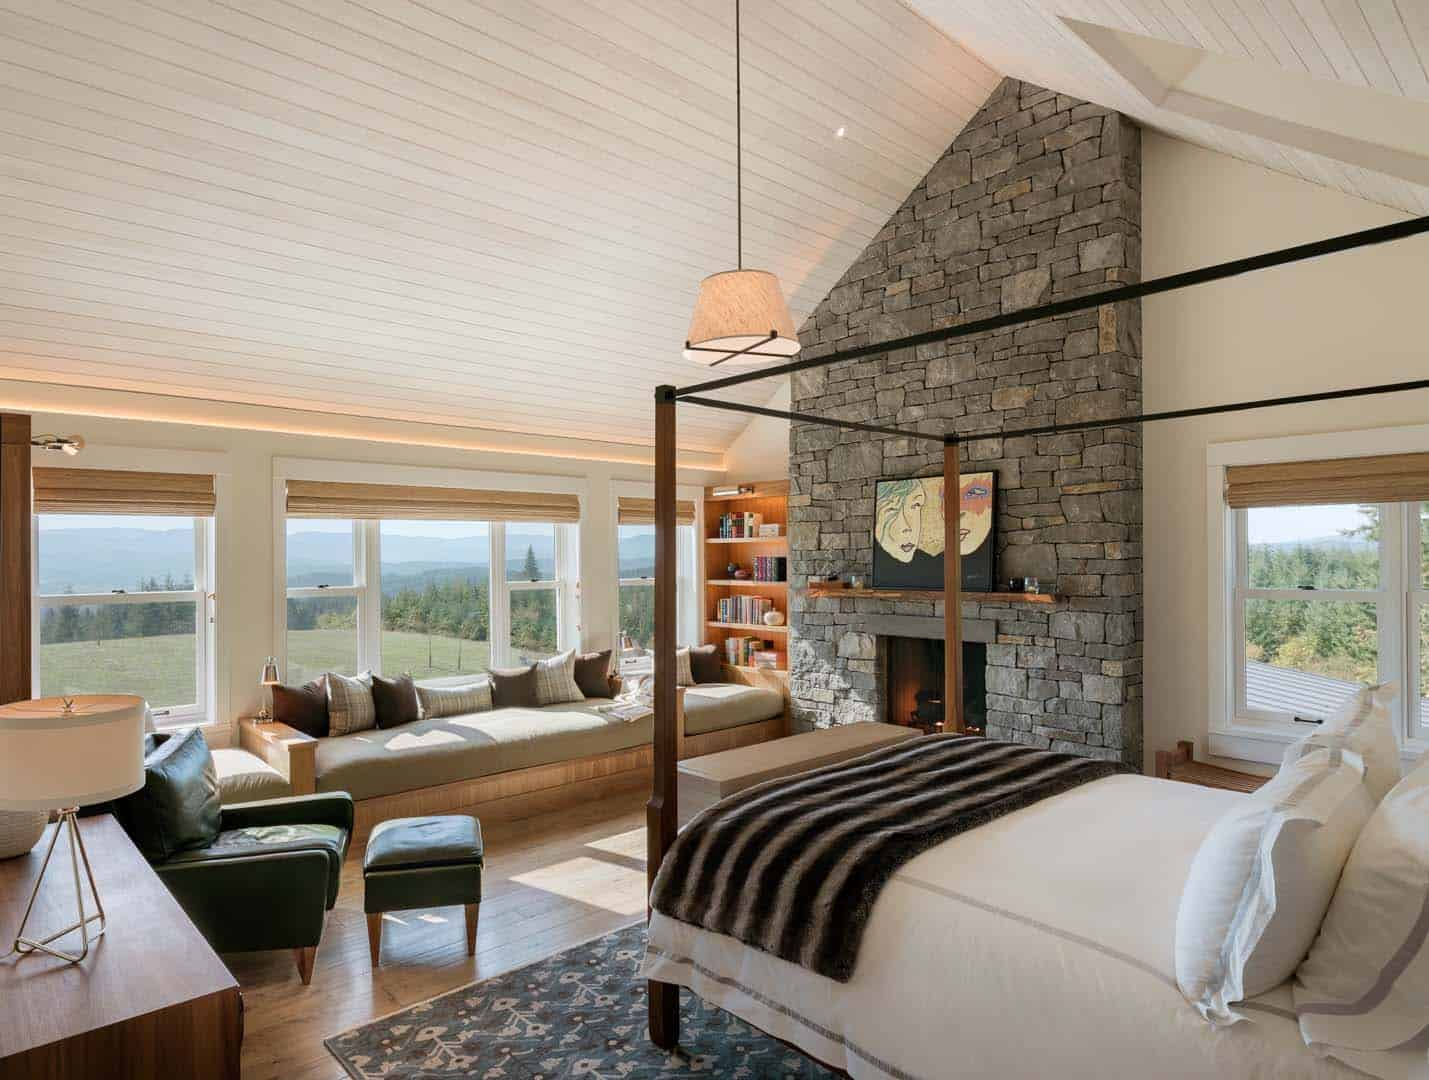 Contemporary Farmhouse Style-Rockefeller Partners Architects-31-1 Kindesign